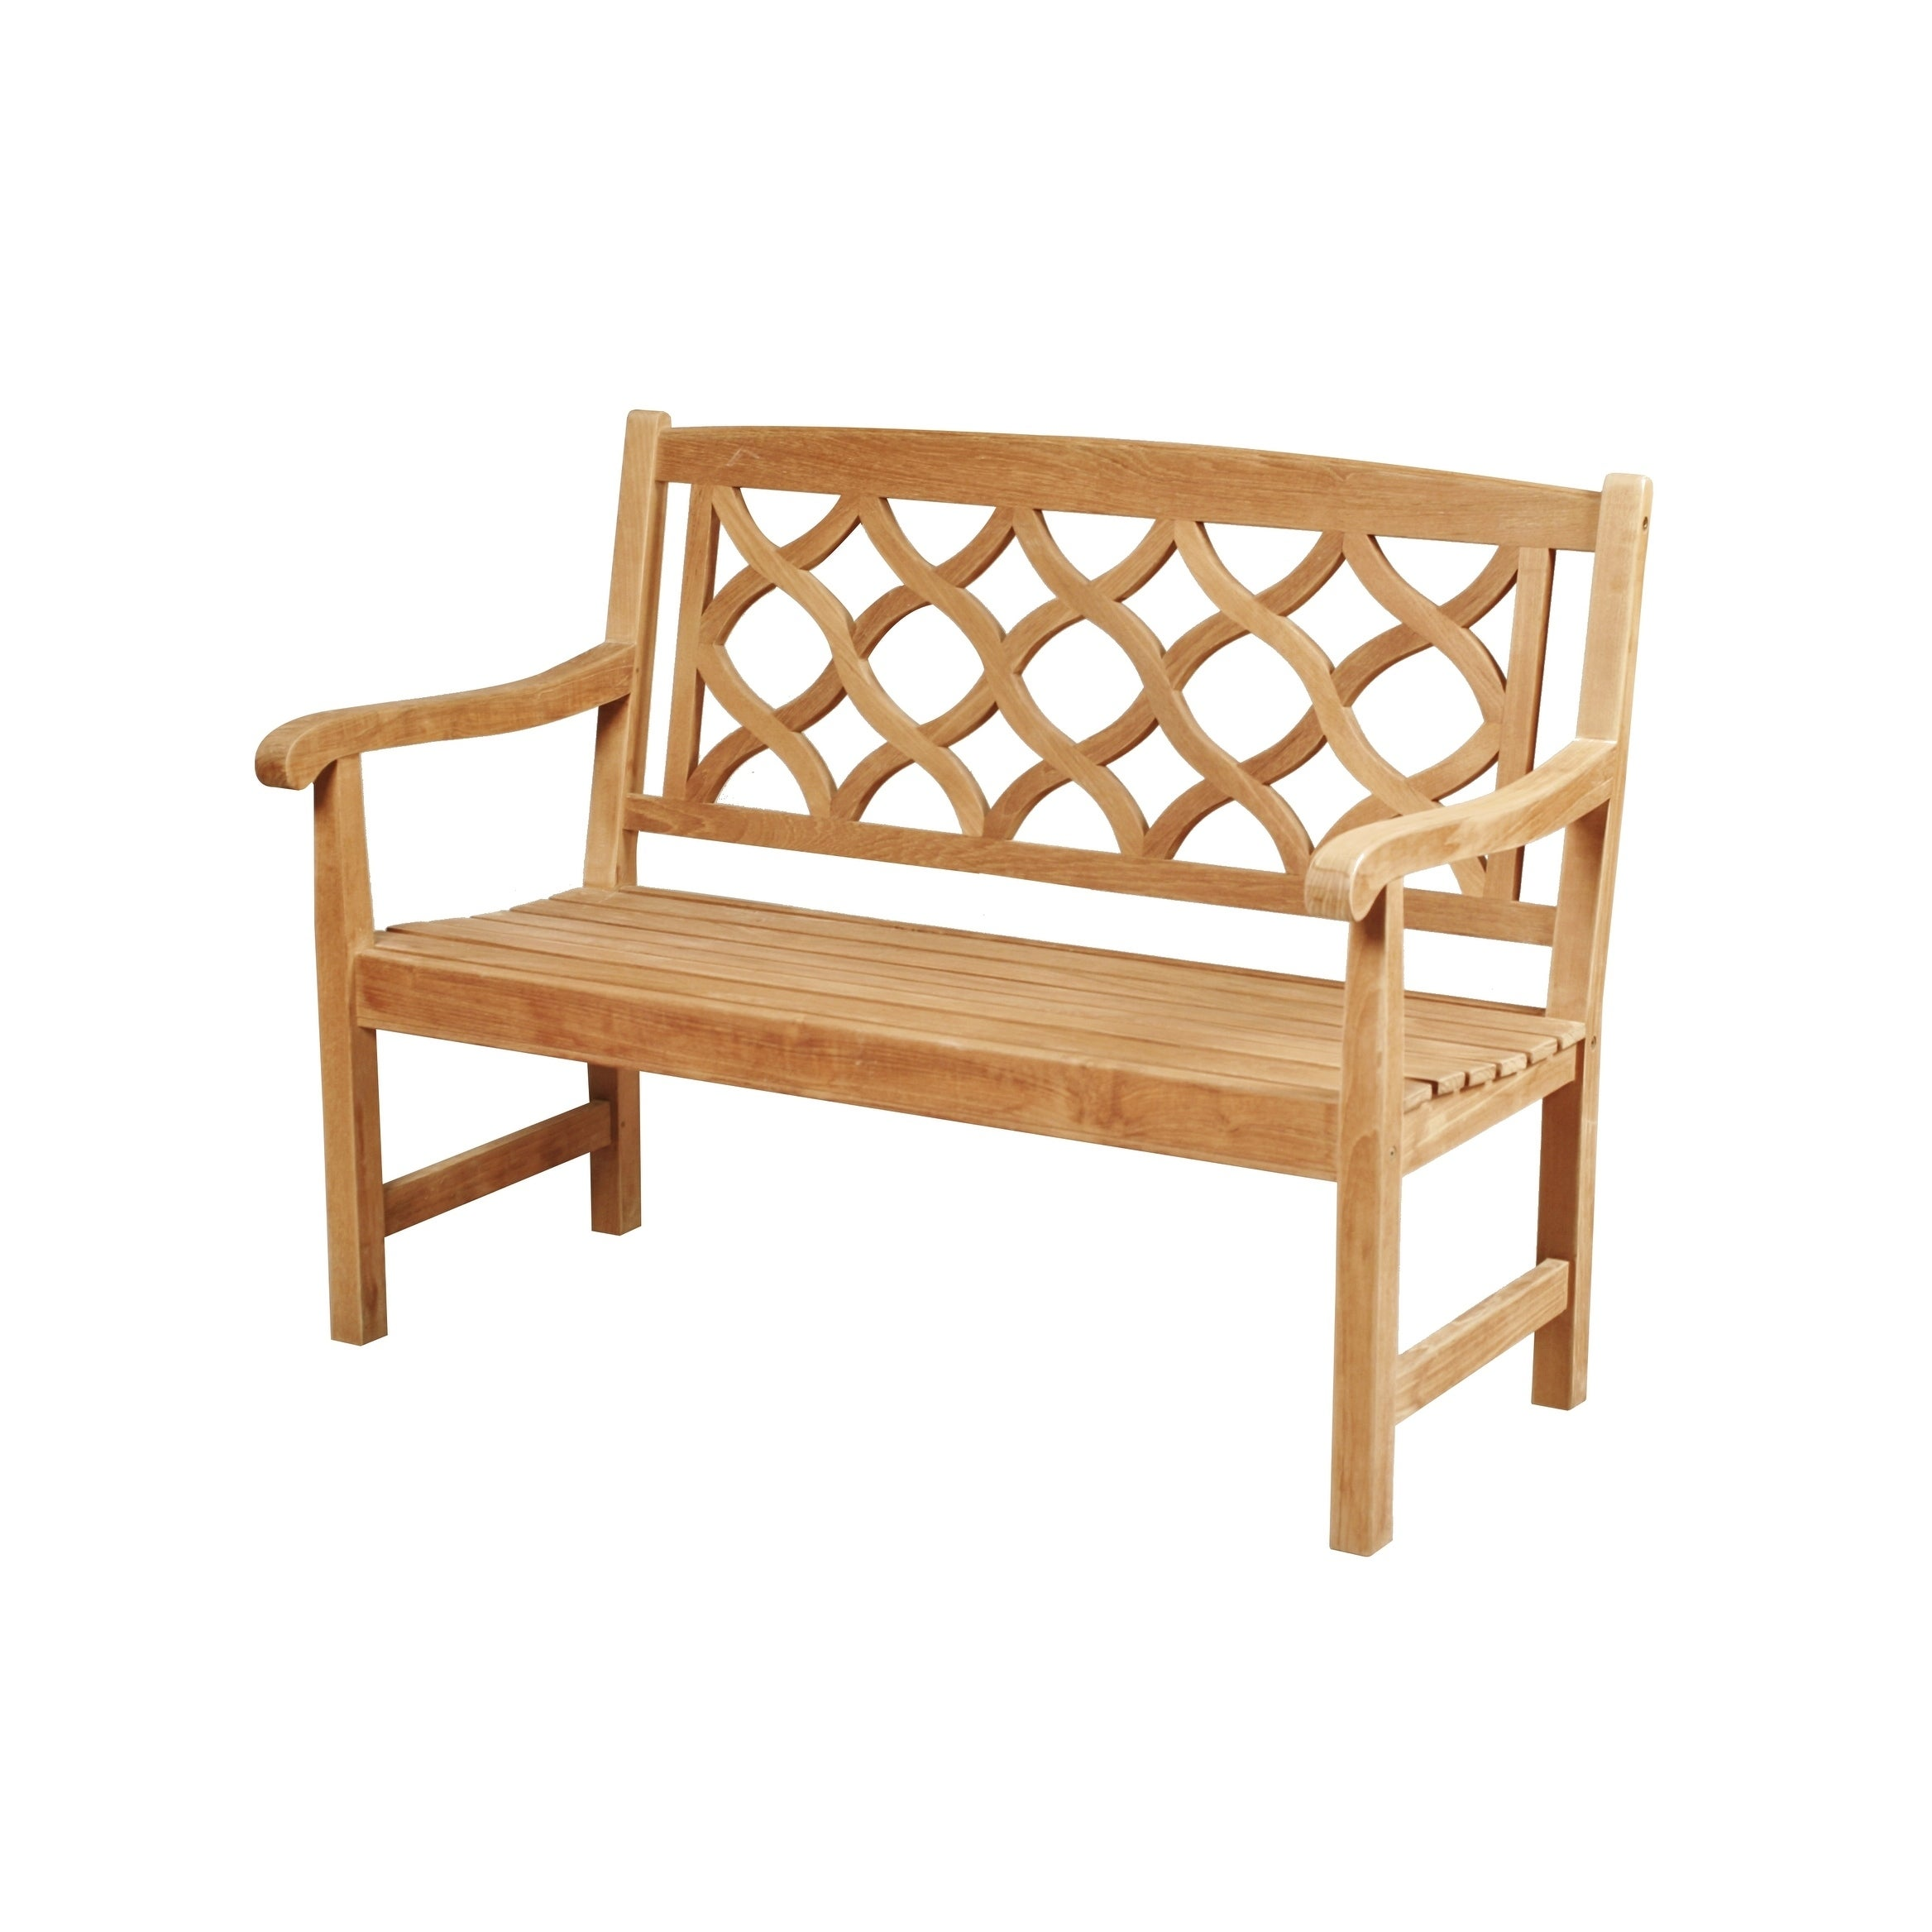 Shop Chichester 2 Seat Outdoor Teak Wood Bench Free Shipping Today